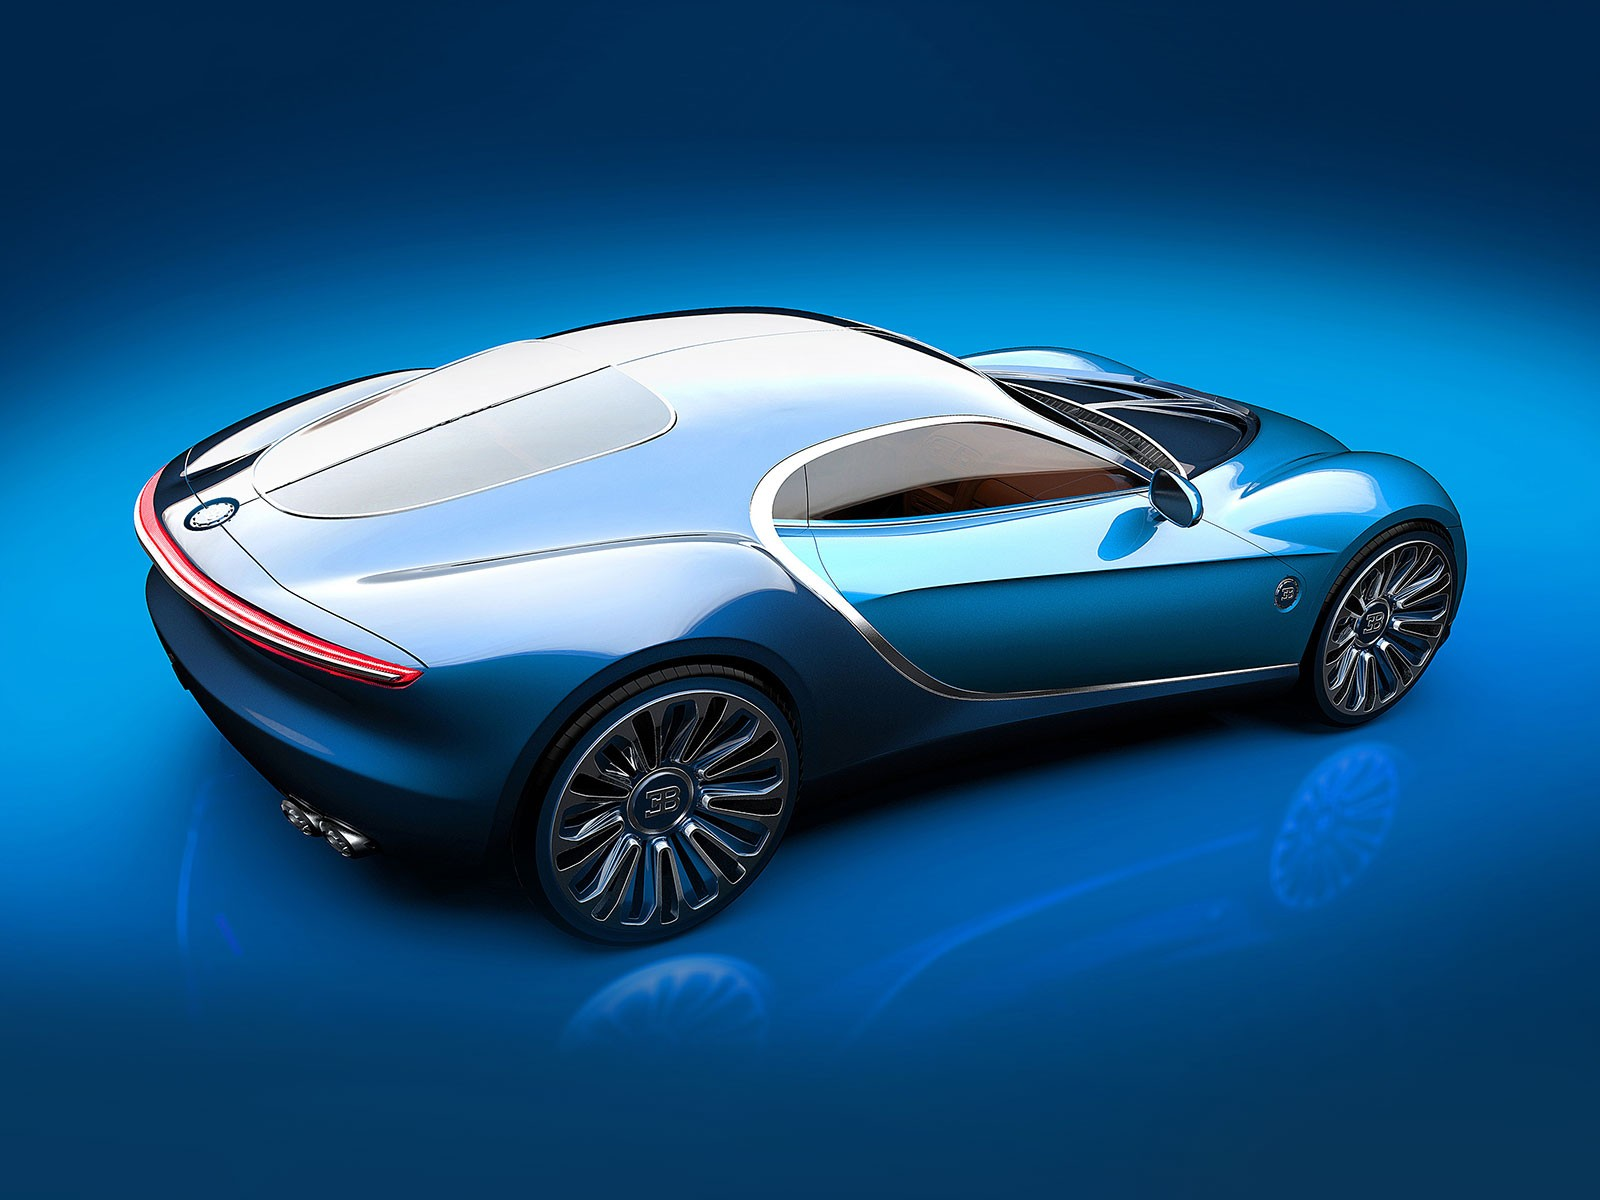 Bugatti Vision Gt Concept Reinvented At Sleek Coupe With Classic Proportions Photo Gallery